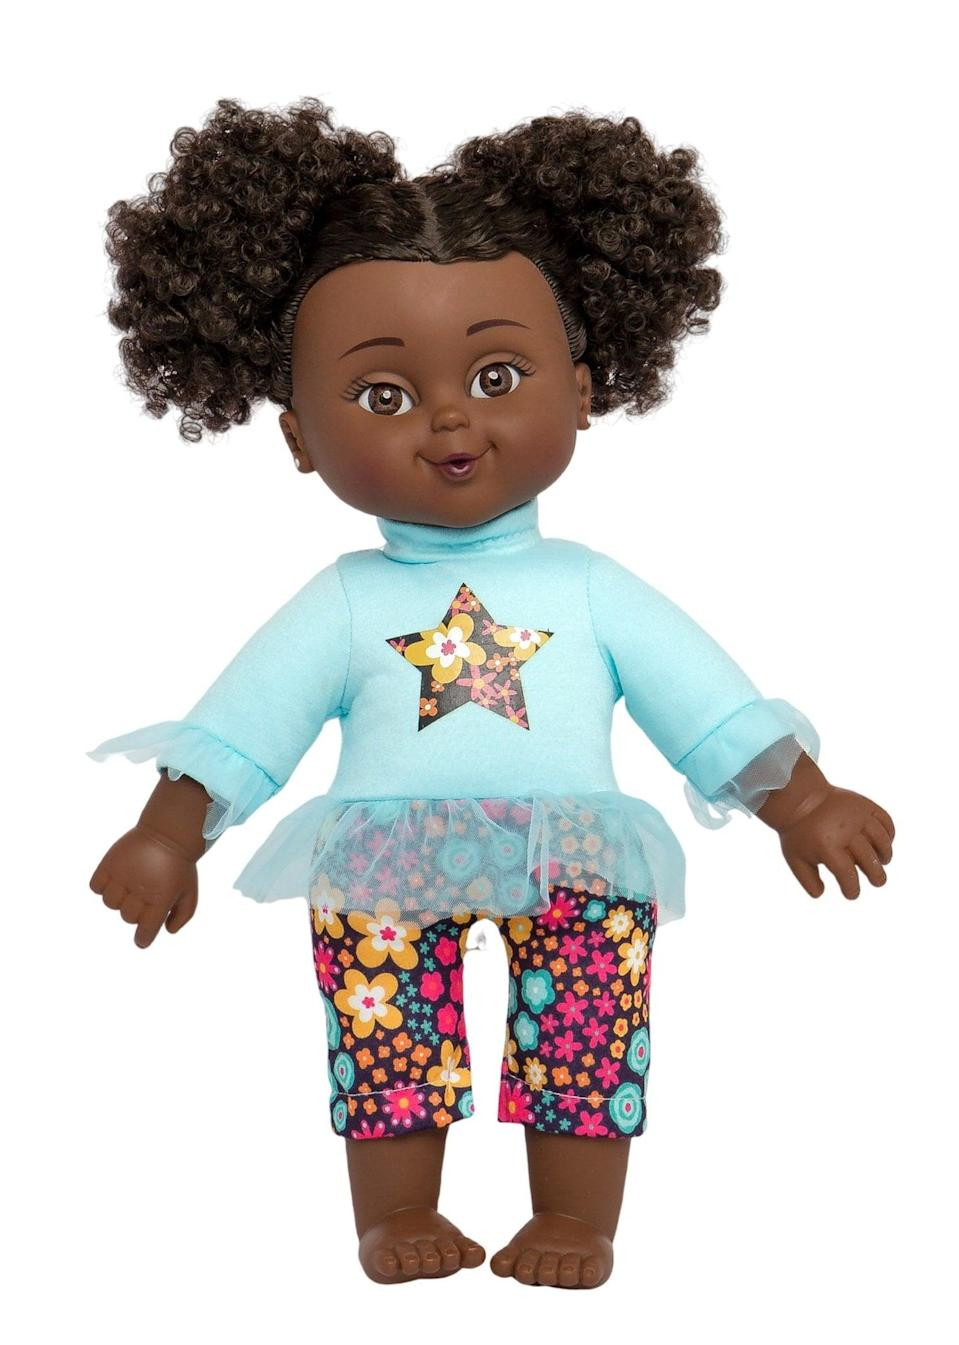 """<p>With a soft body, the <a href=""""https://www.popsugar.com/buy/Positively-Perfect-Curly-Afro-Puffs-Baby-Doll-579585?p_name=Positively%20Perfect%20Curly%20Afro%20Puffs%20Baby%20Doll&retailer=thefreshdolls.com&pid=579585&price=26&evar1=moms%3Aus&evar9=47528625&evar98=https%3A%2F%2Fwww.popsugar.com%2Ffamily%2Fphoto-gallery%2F47528625%2Fimage%2F47528646%2FPositively-Perfect-Curly-Afro-Puffs-Baby-Doll&list1=kid%20shopping&prop13=mobile&pdata=1"""" rel=""""nofollow noopener"""" class=""""link rapid-noclick-resp"""" target=""""_blank"""" data-ylk=""""slk:Positively Perfect Curly Afro Puffs Baby Doll"""">Positively Perfect Curly Afro Puffs Baby Doll</a> ($26) is the perfect companion for bedtime. </p>"""